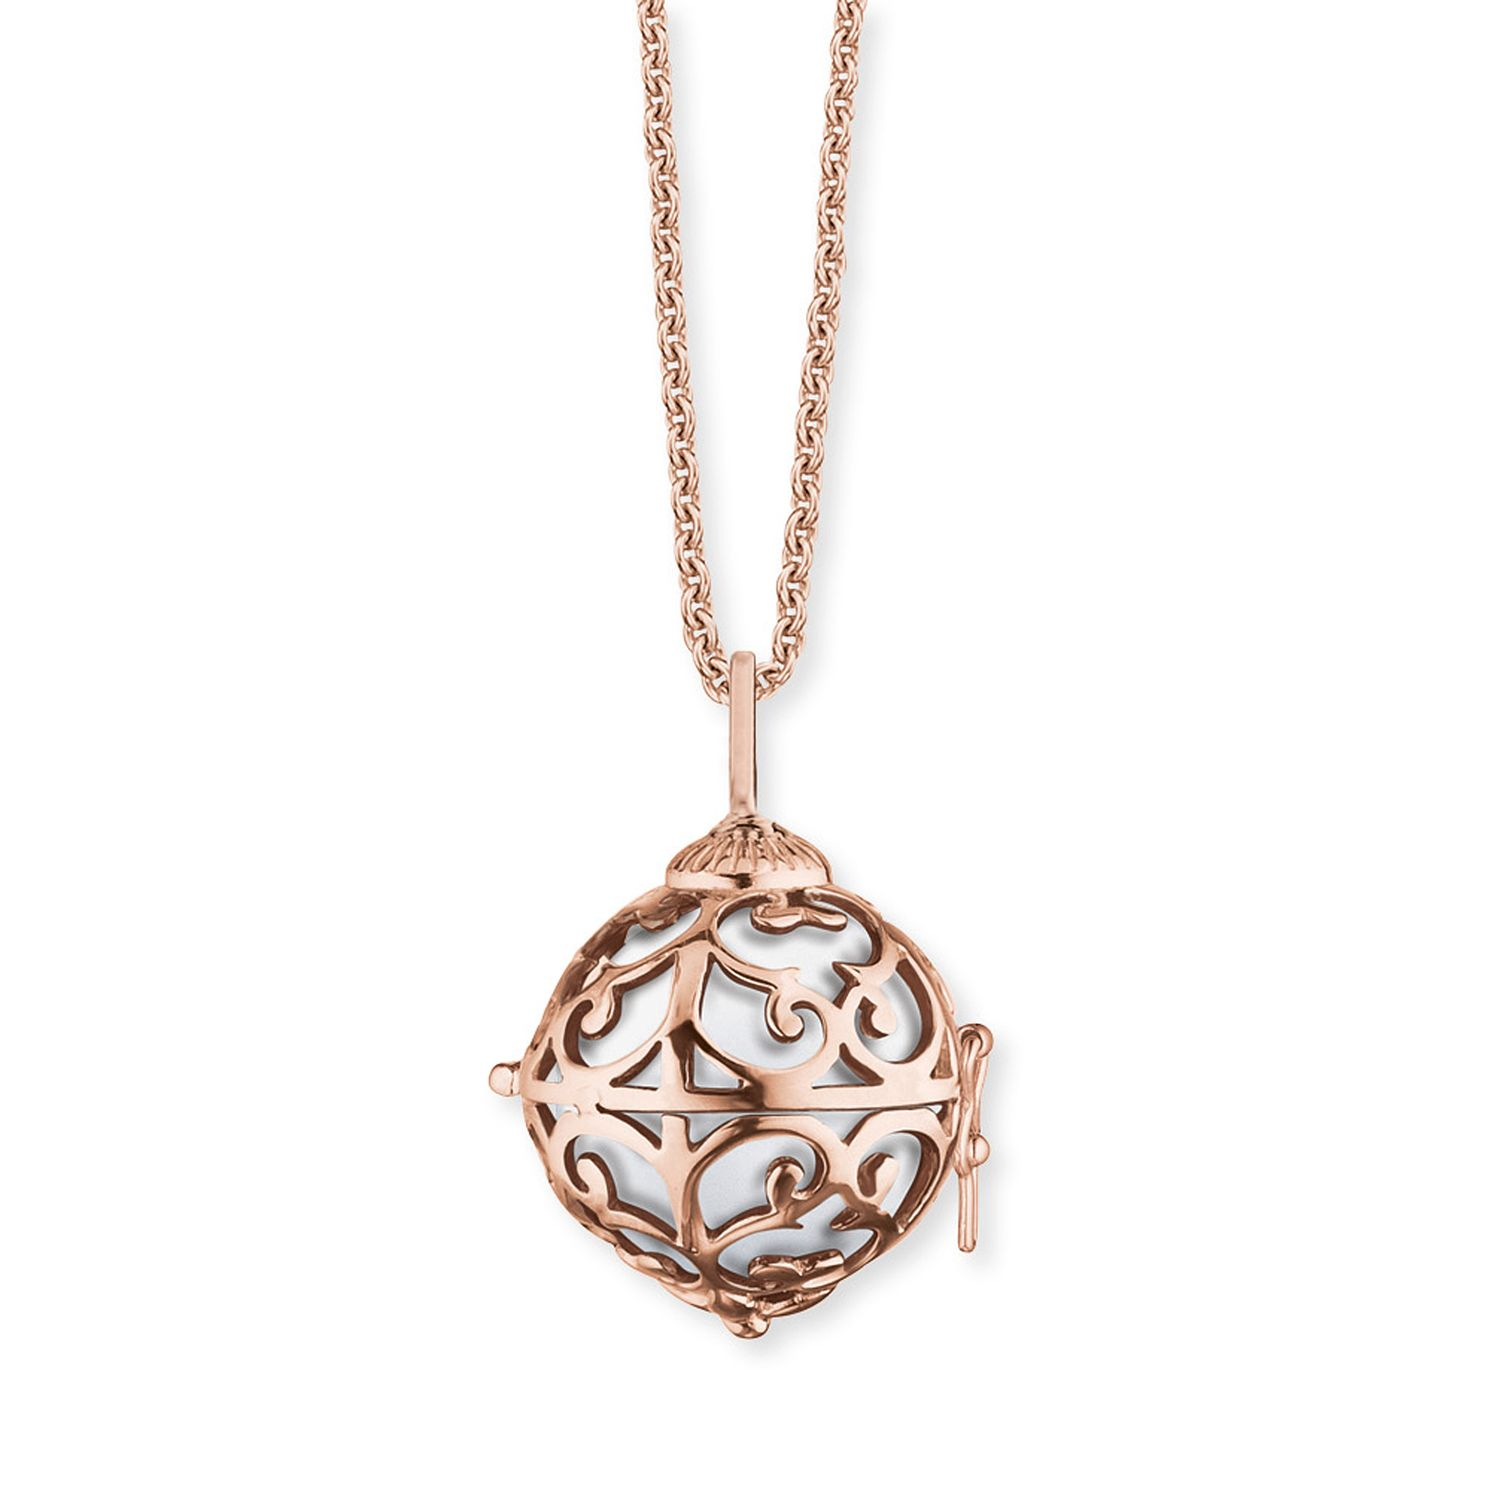 Angel Whisperer Extra Small Rose Gold White Chime Necklace - Product number 4220722